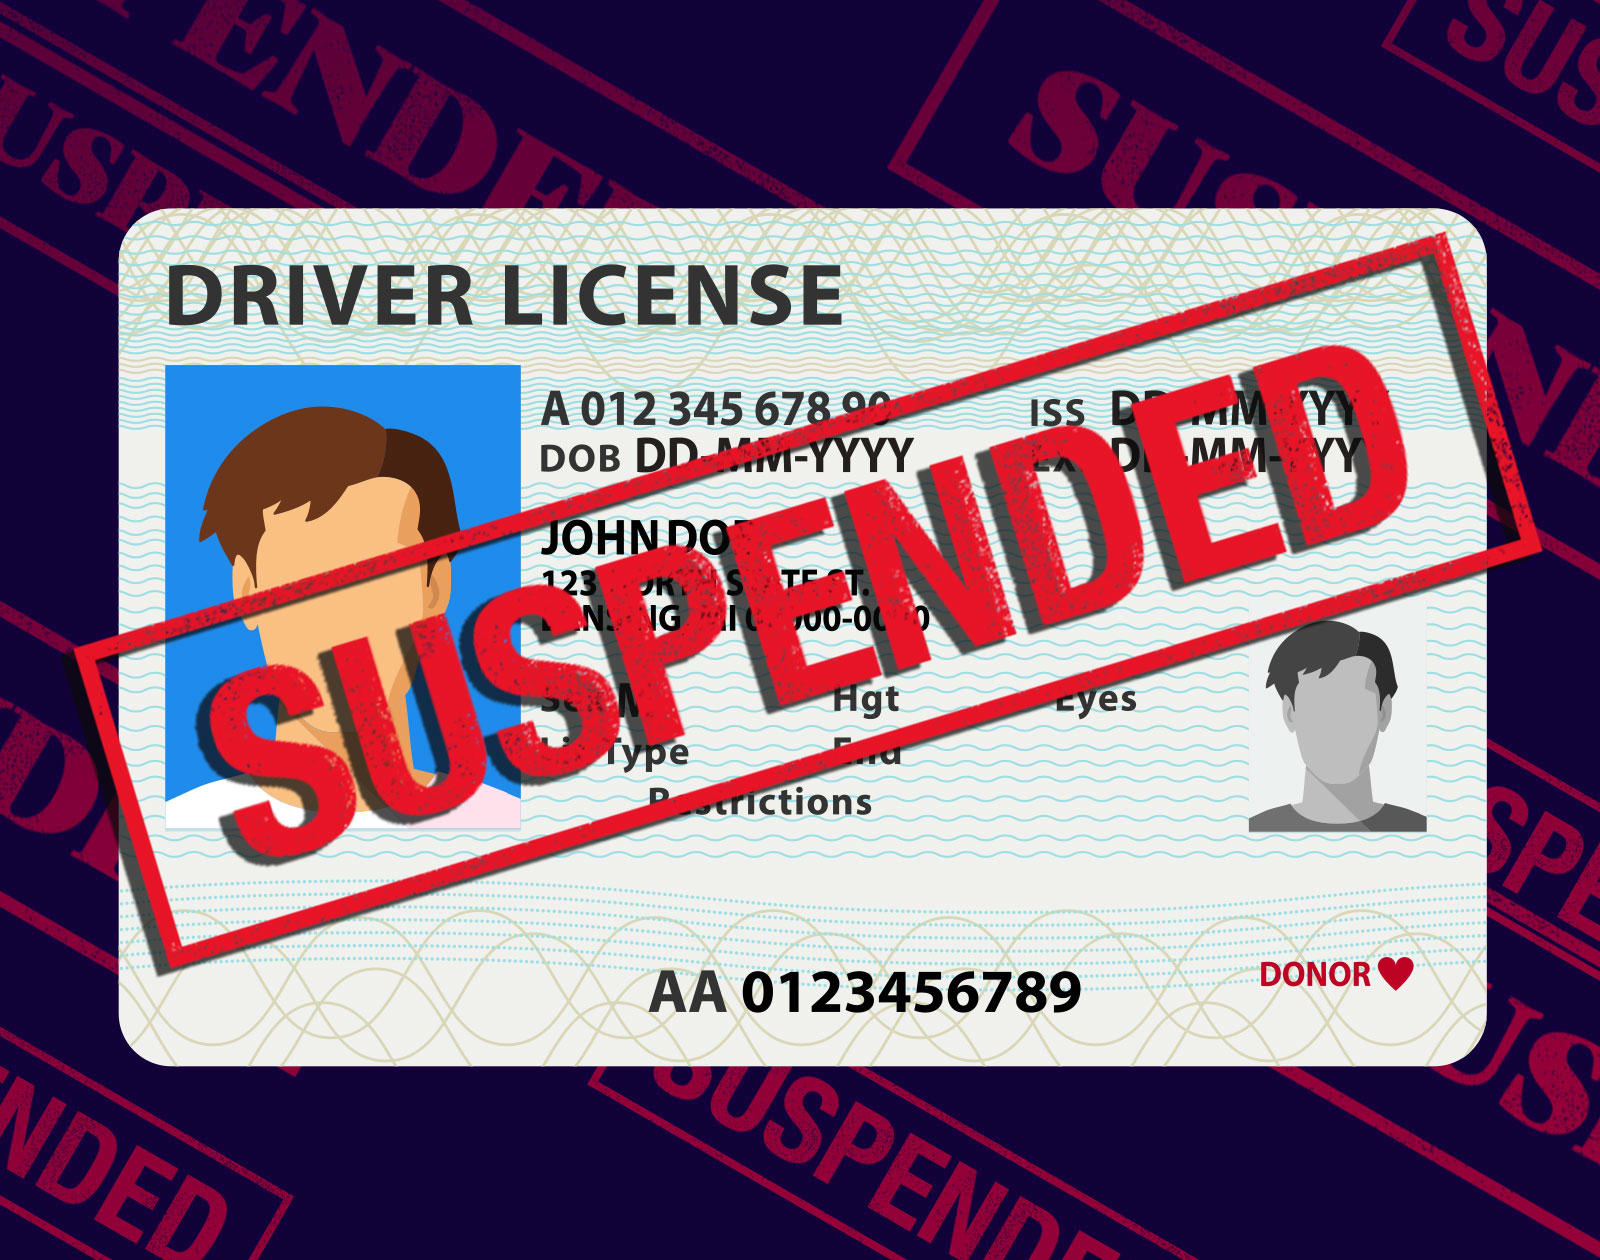 13 Ways You Could Lose Your License Without Getting Behind